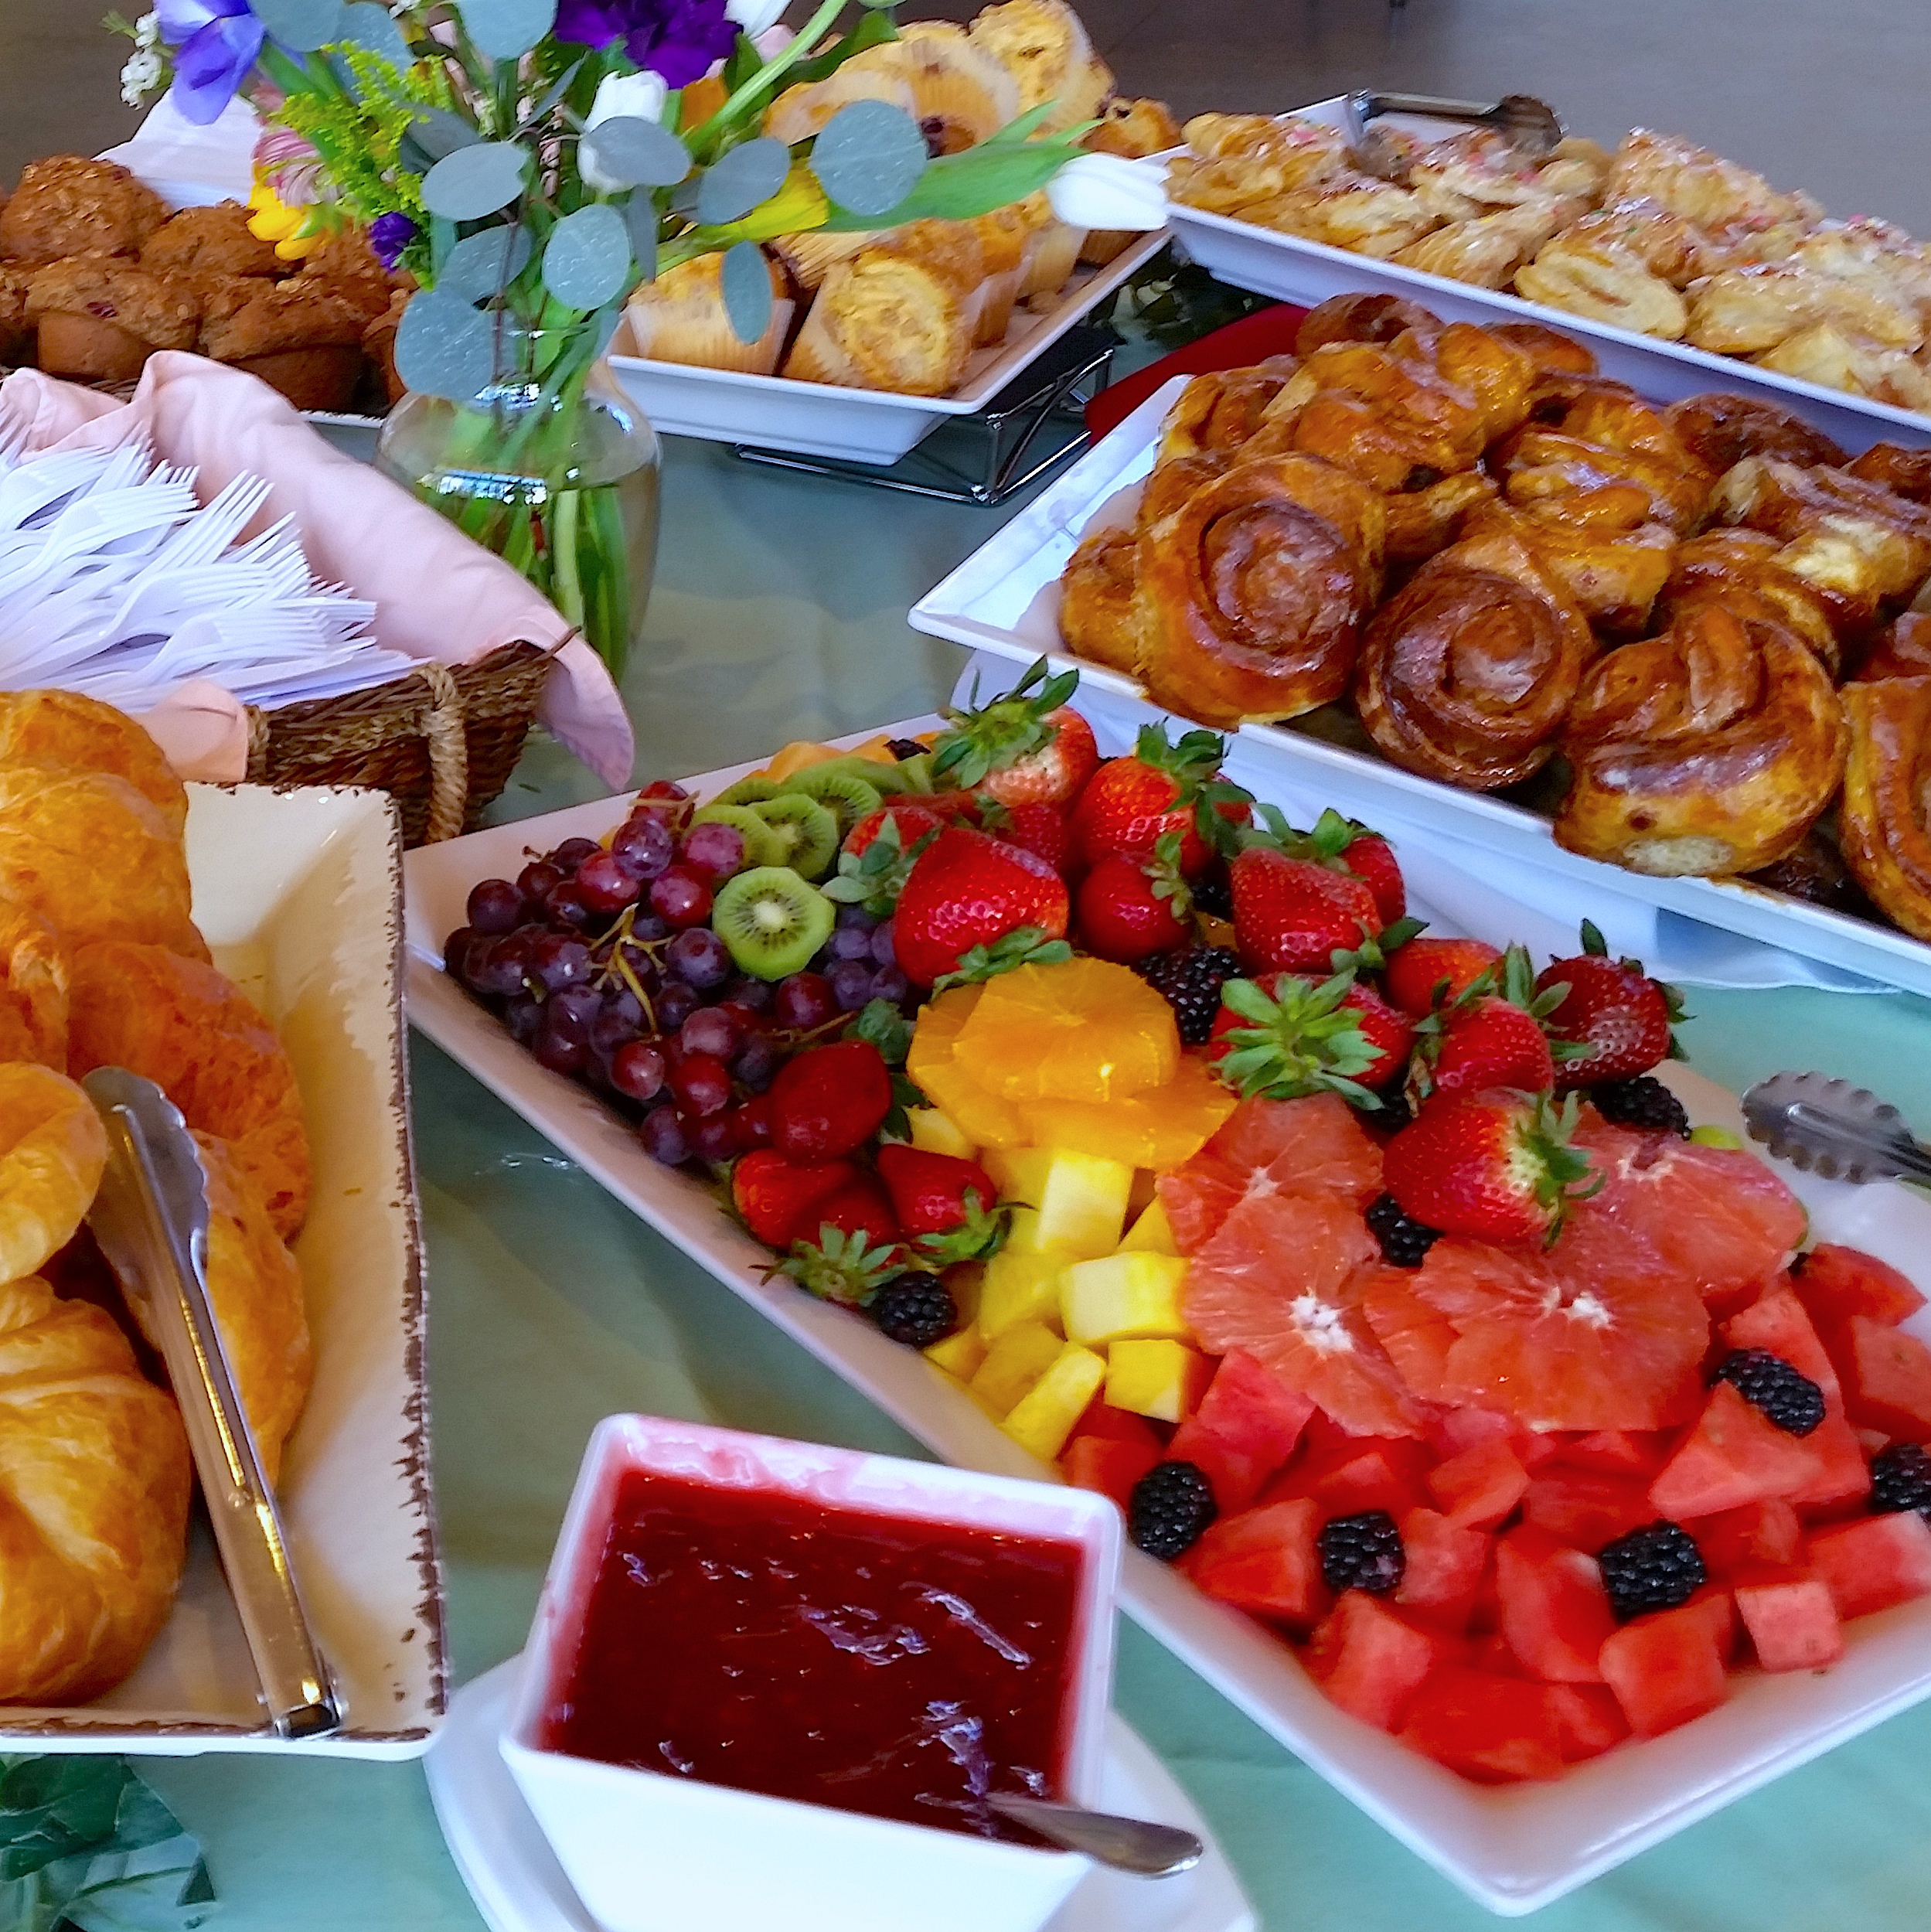 Tate And Tate Catering